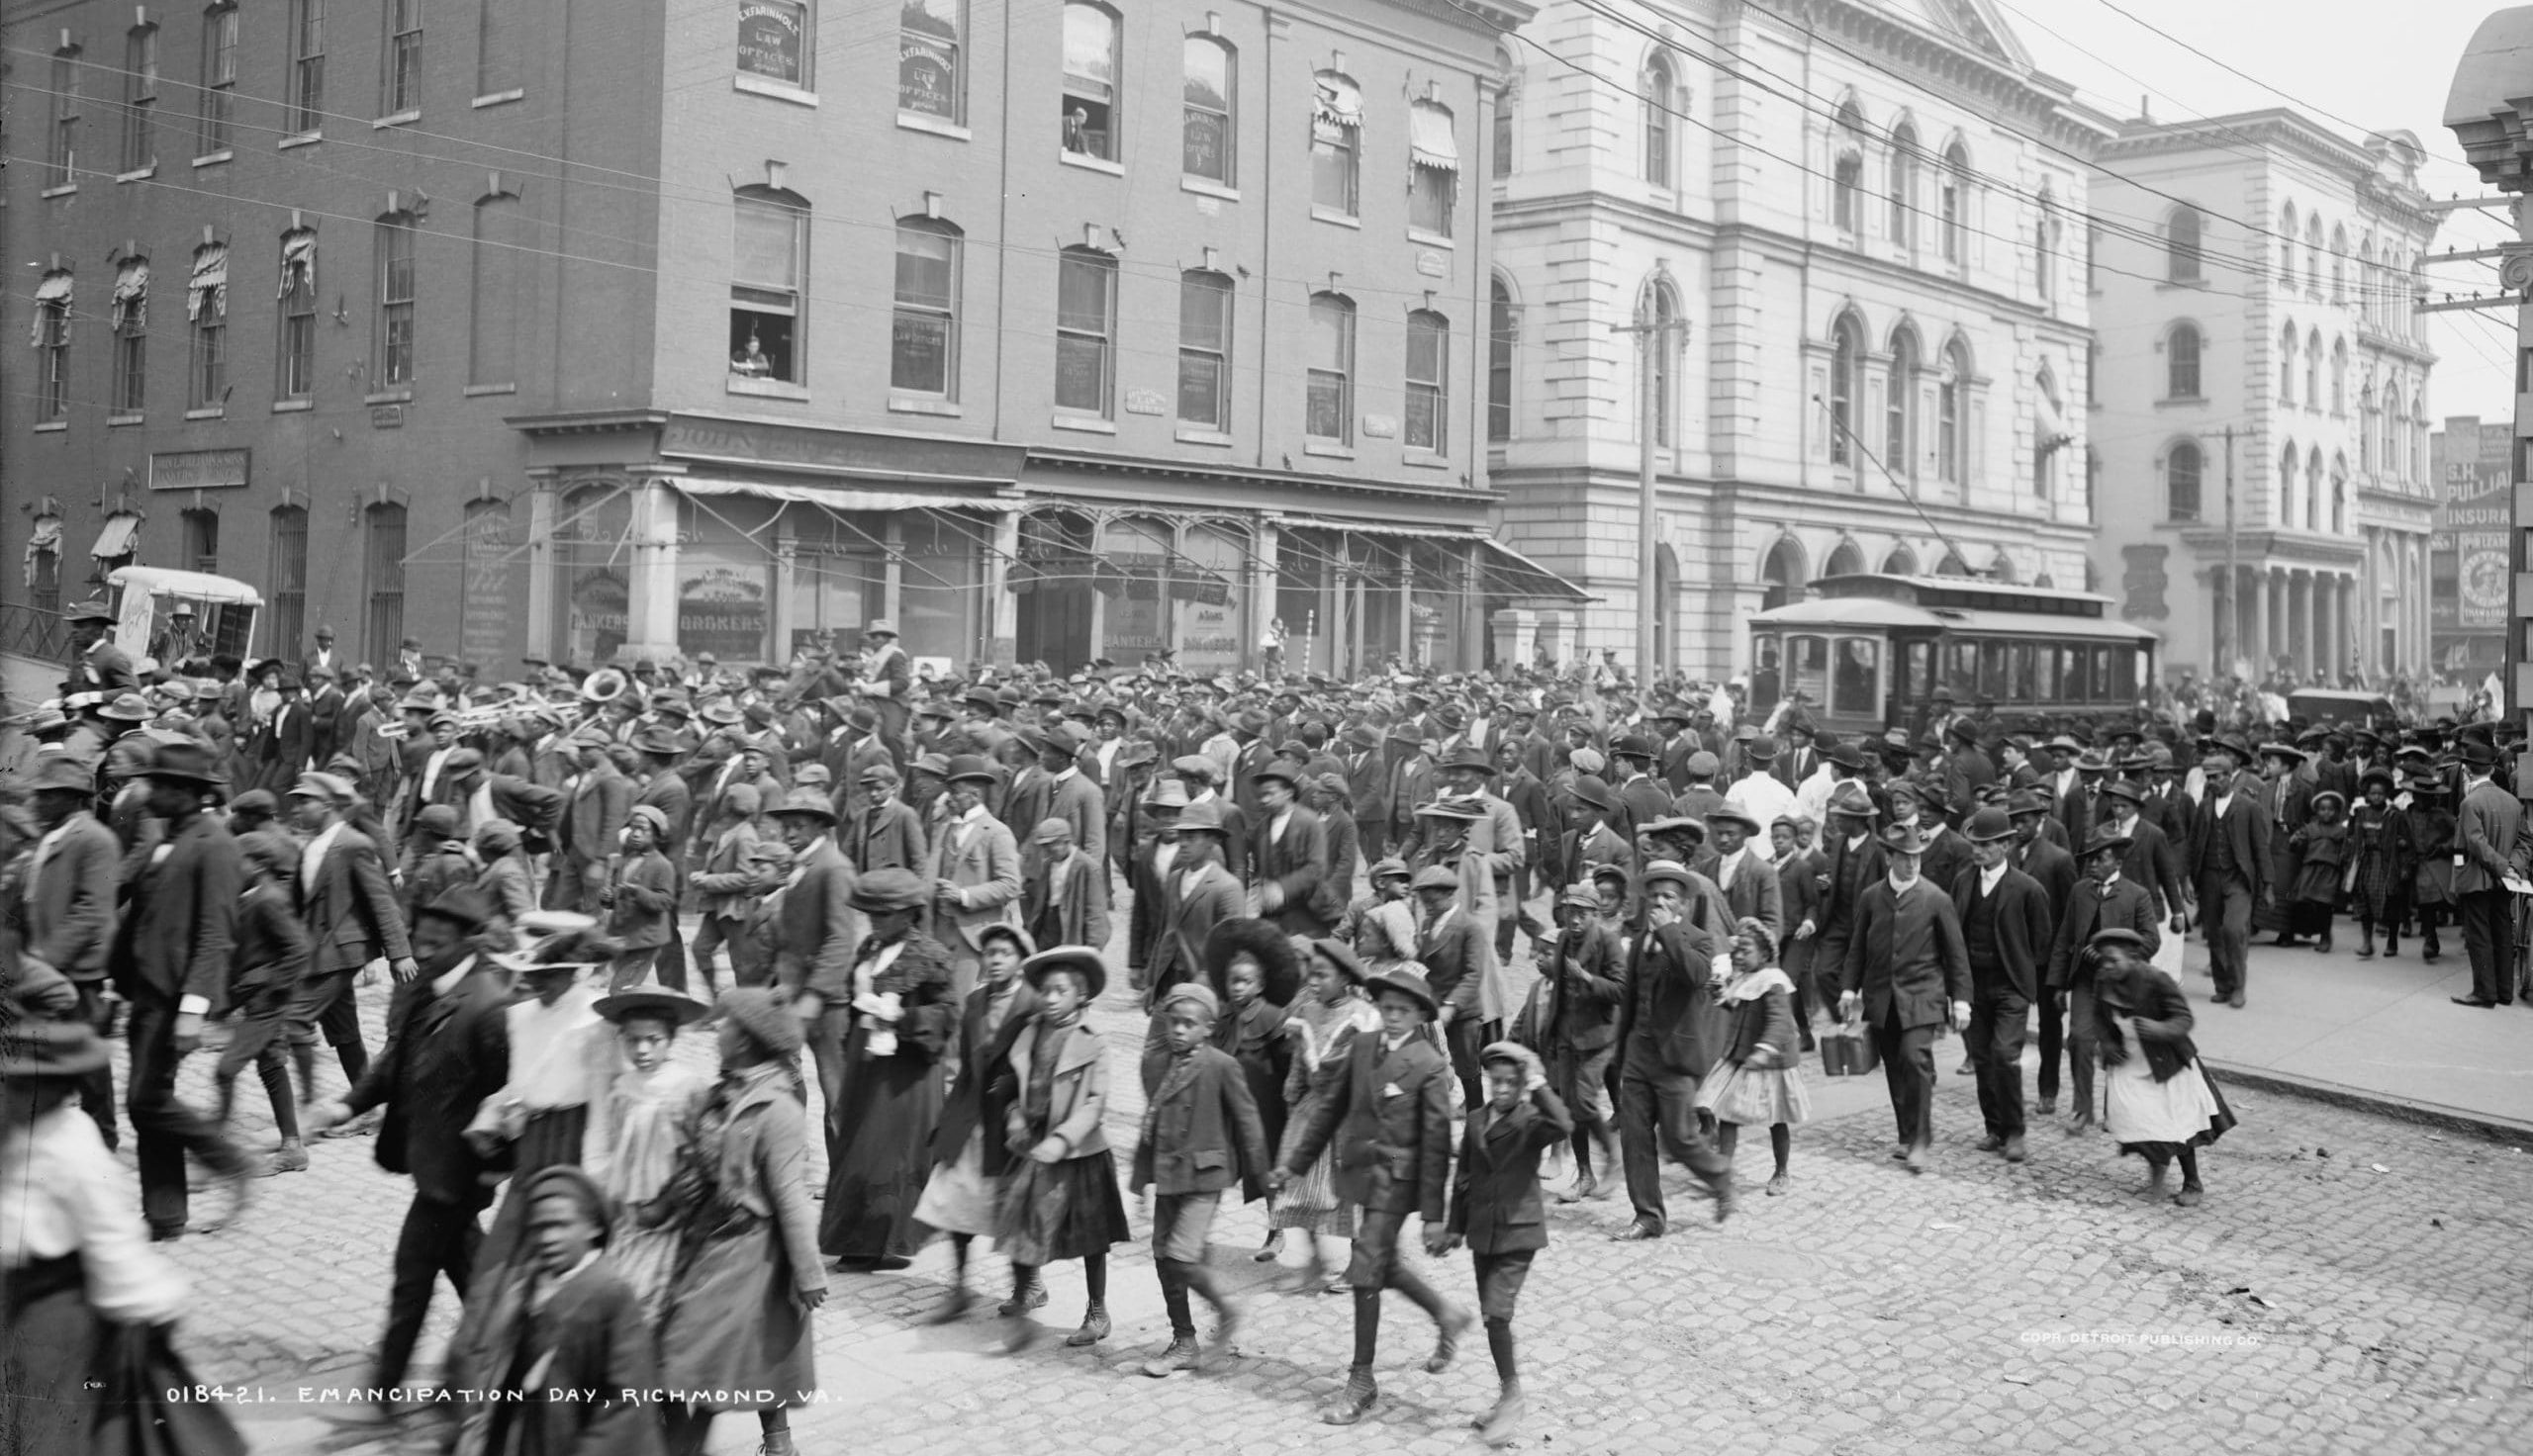 On Juneteenth, challenge pain and injustice, don't deny it